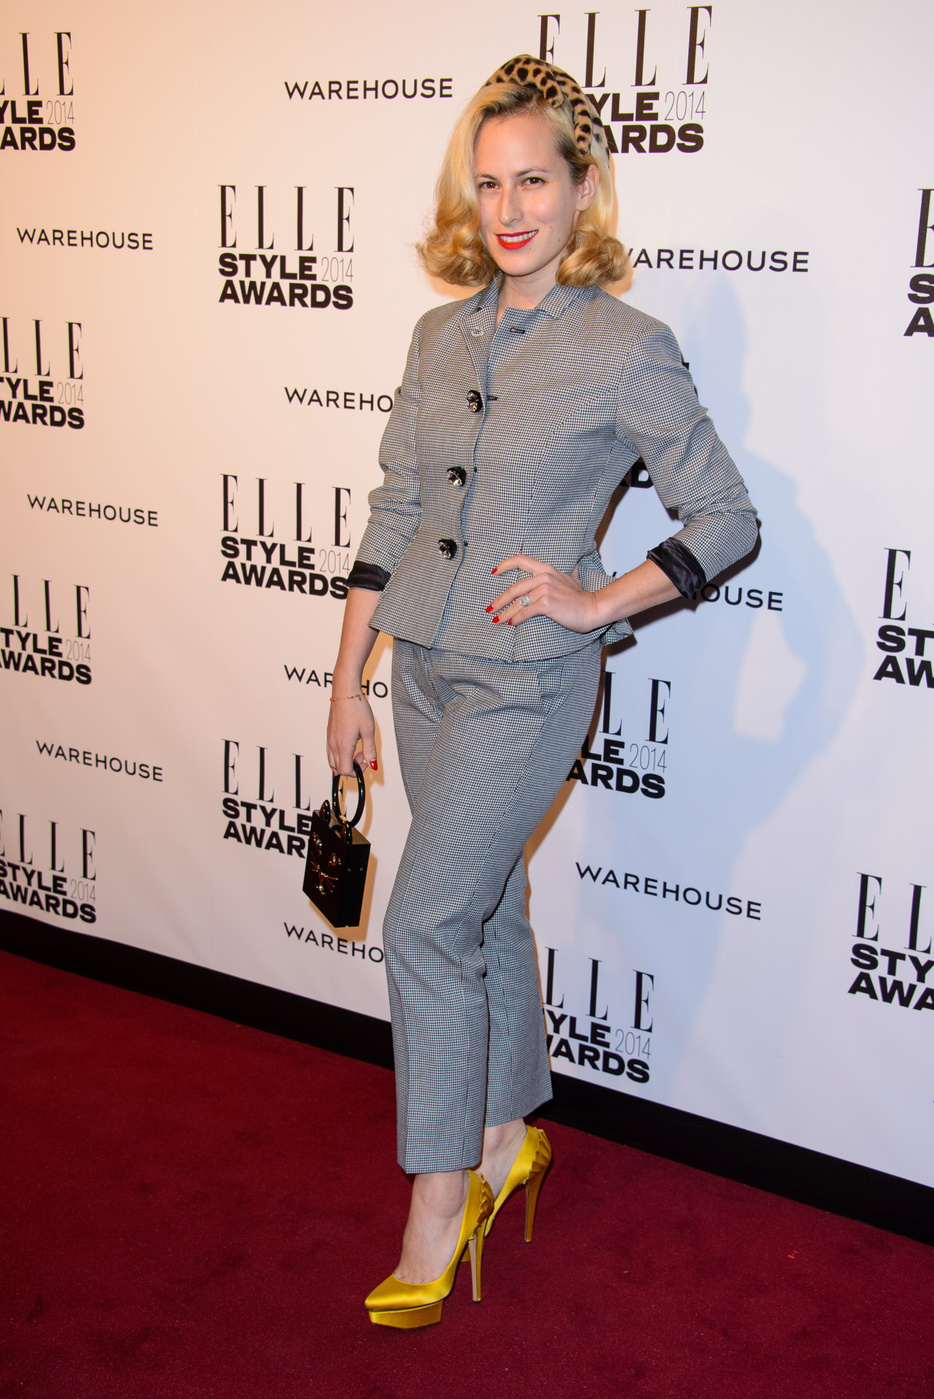 Charlotte Dellal attends  the Elle Style Awards 2014 at one Embankment in London